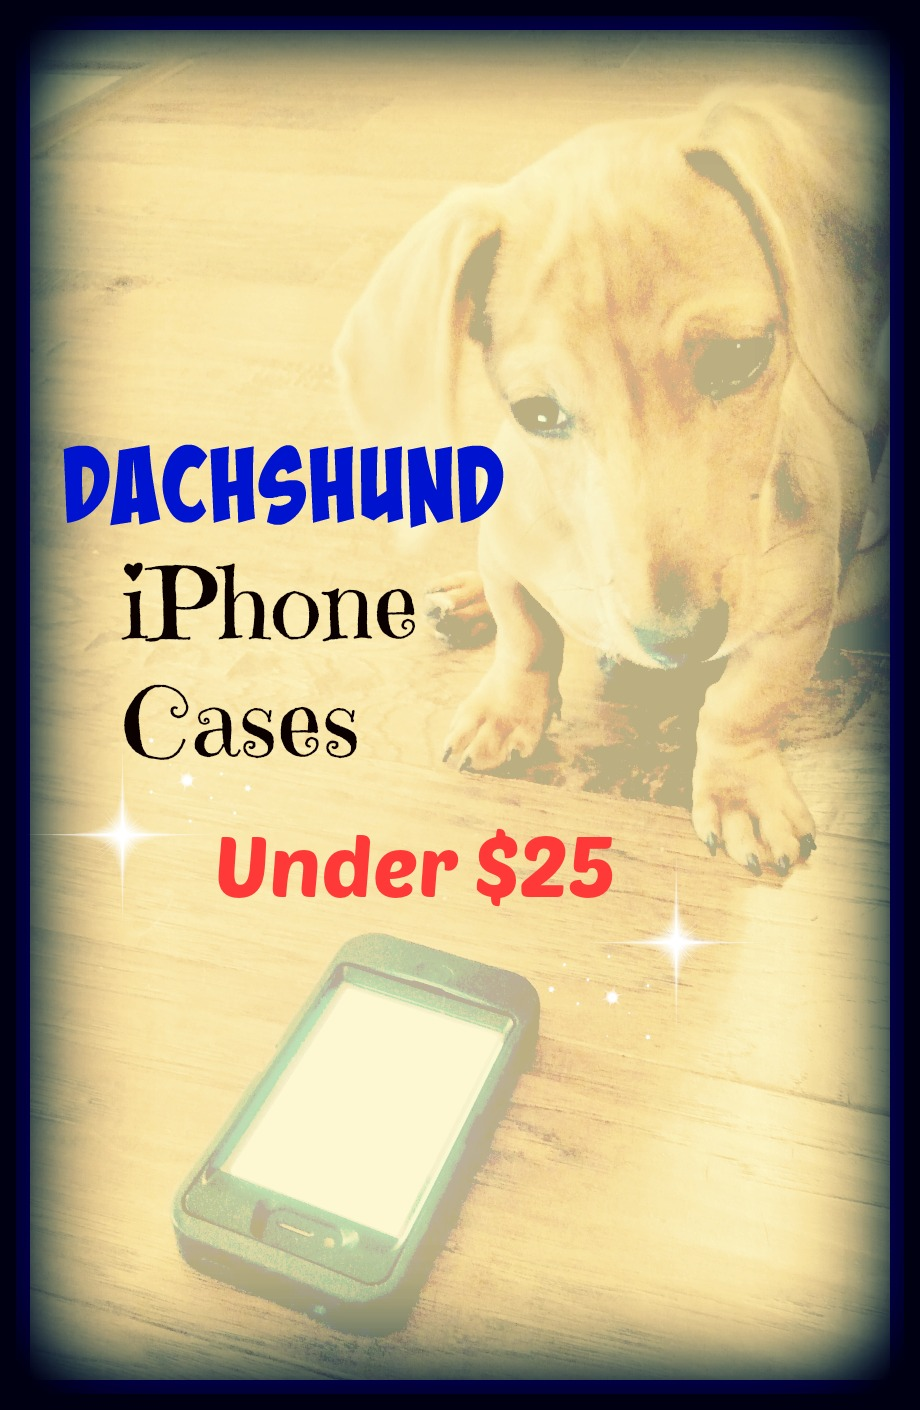 Dachshund iPhone Cases